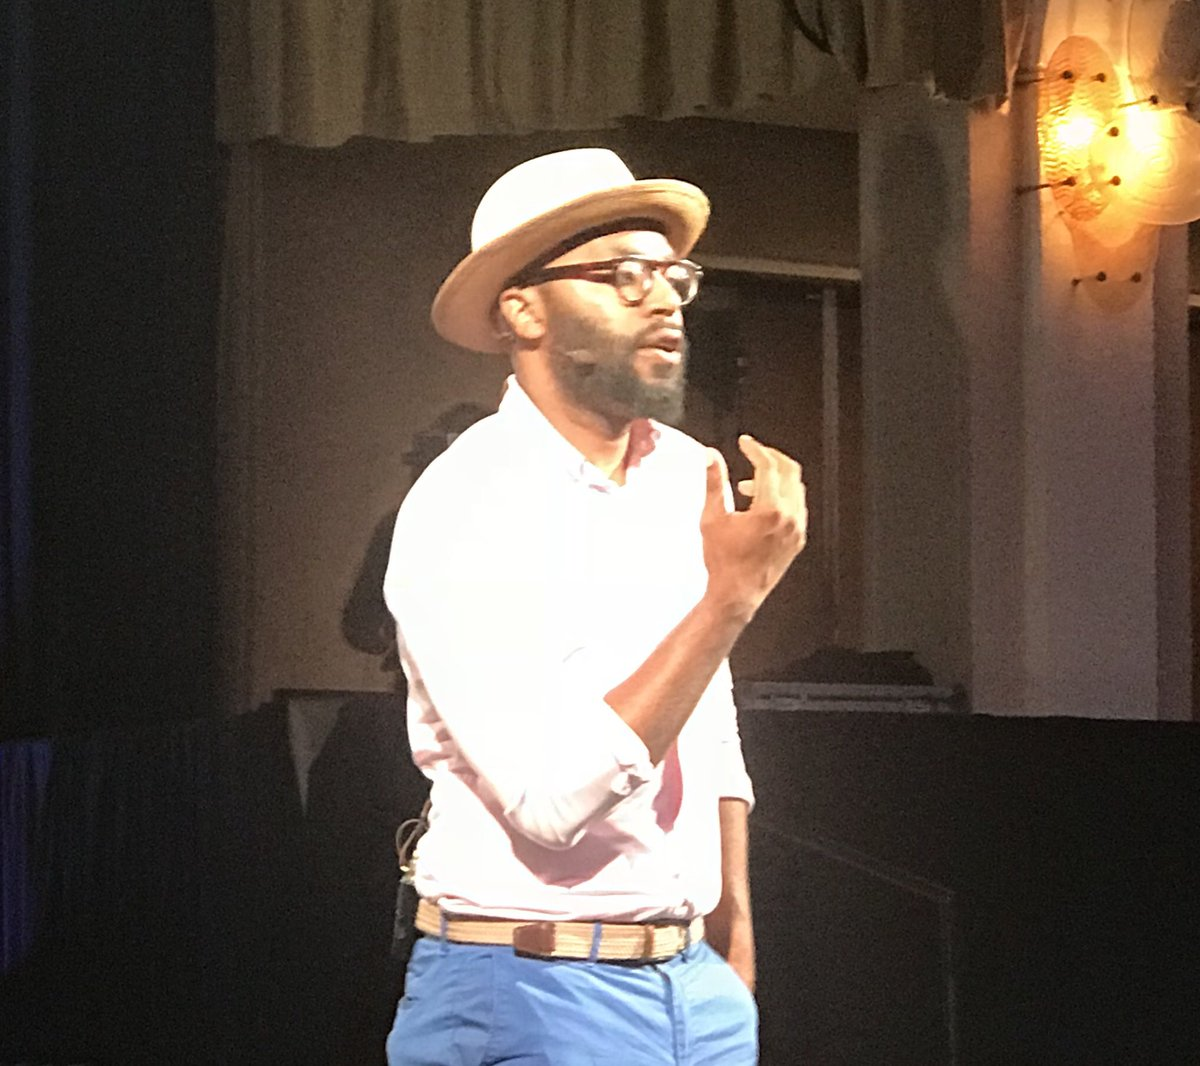 """""""You can't utilize old models for a new time."""" @chrisemdin inspiring #TEACH19 to break free from models that were created during times when those we educate weren't even included. @AFTteach @AFTunion"""